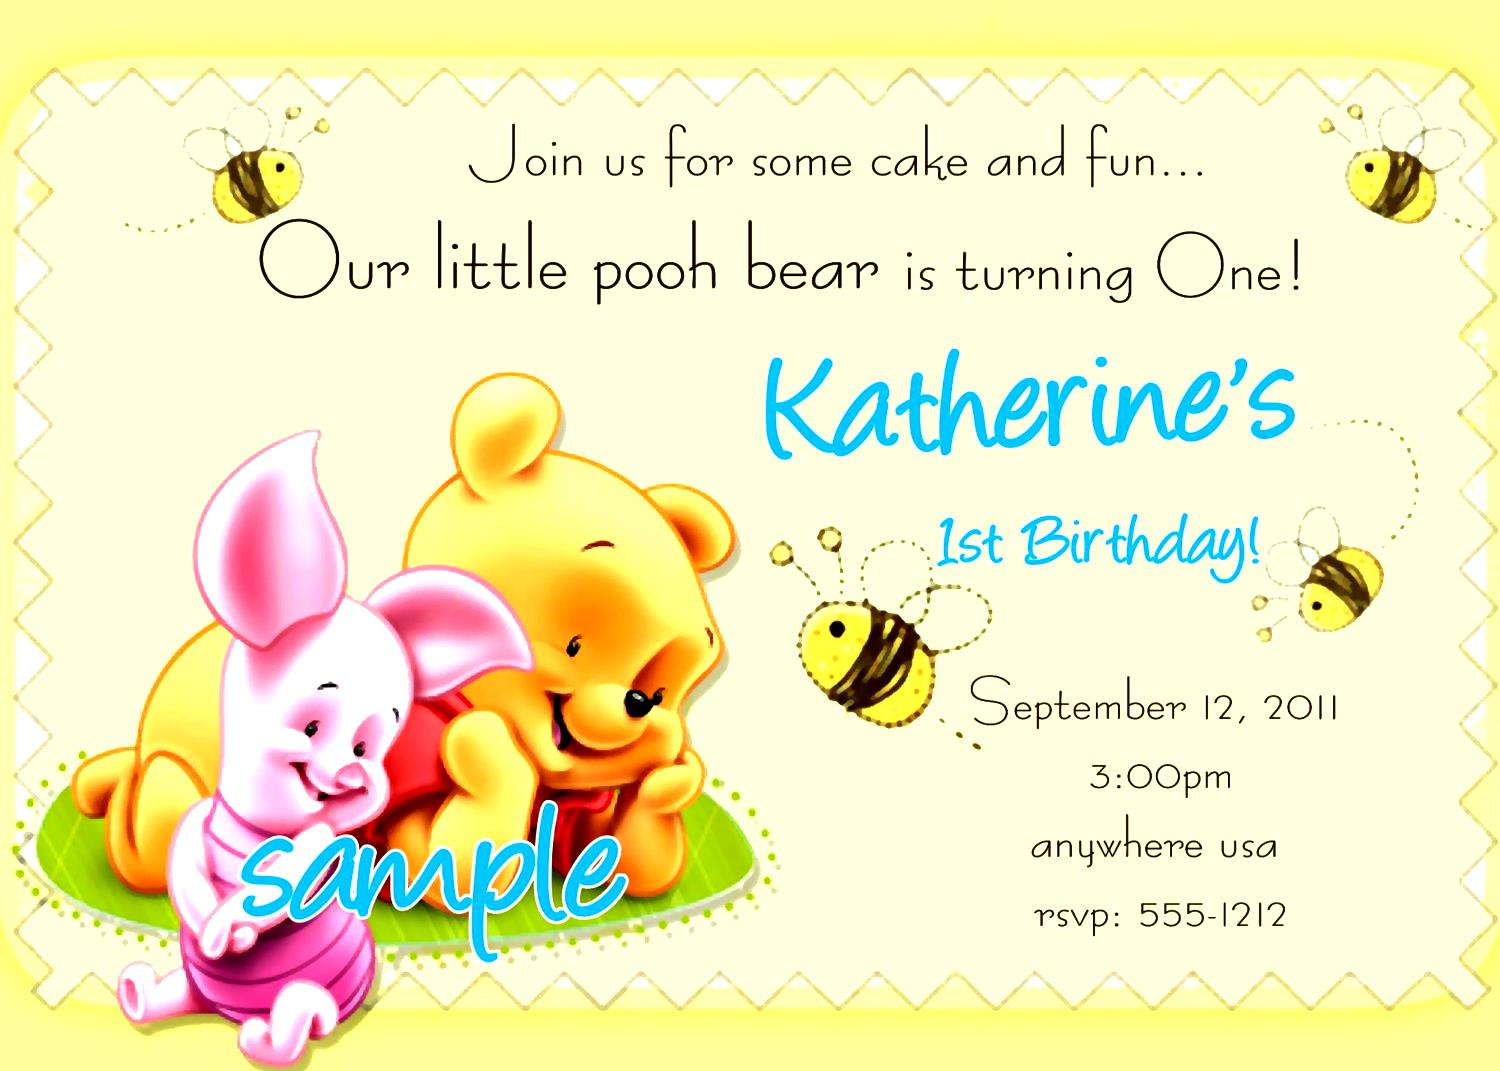 birthday card invitation templates | trattorialeondoro